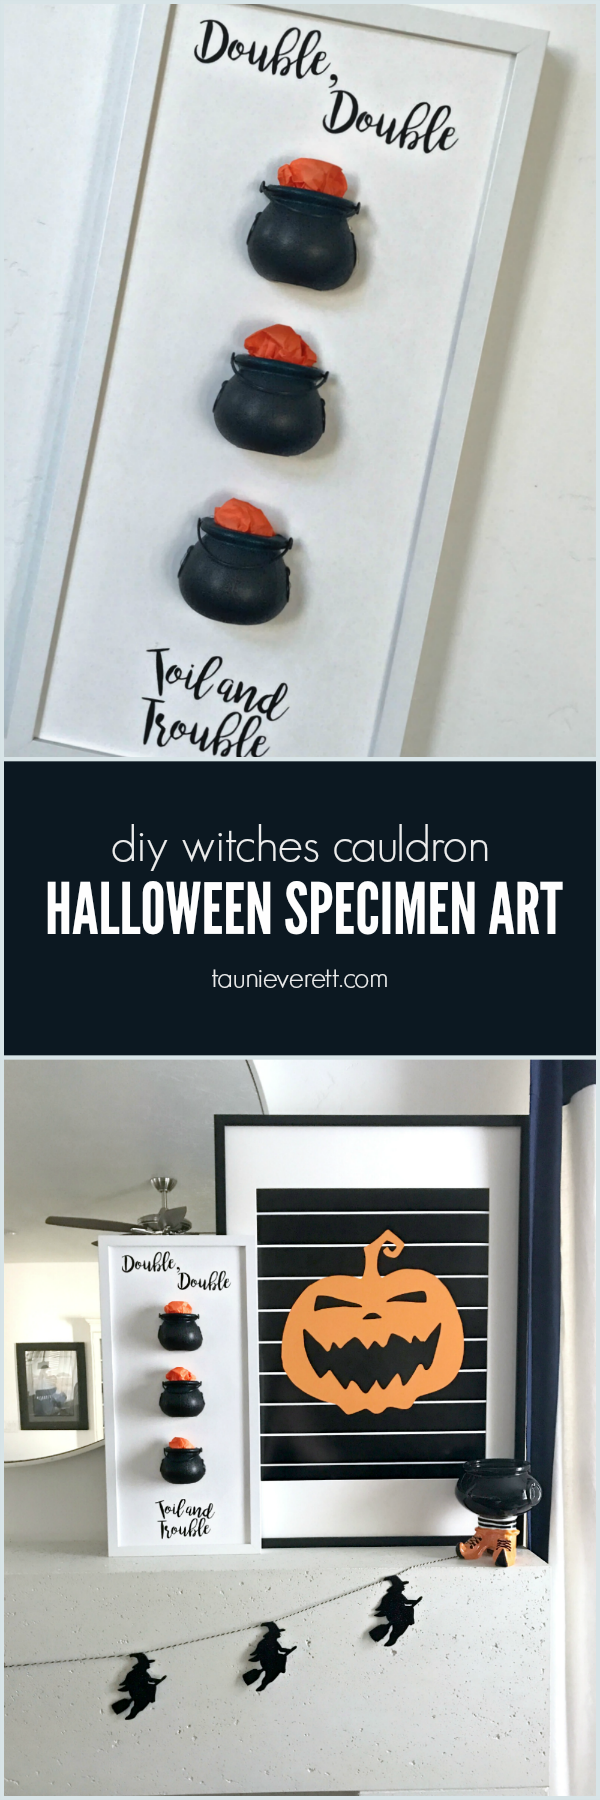 DIY witches cauldron Halloween specimen art. #halloween #halloweenart